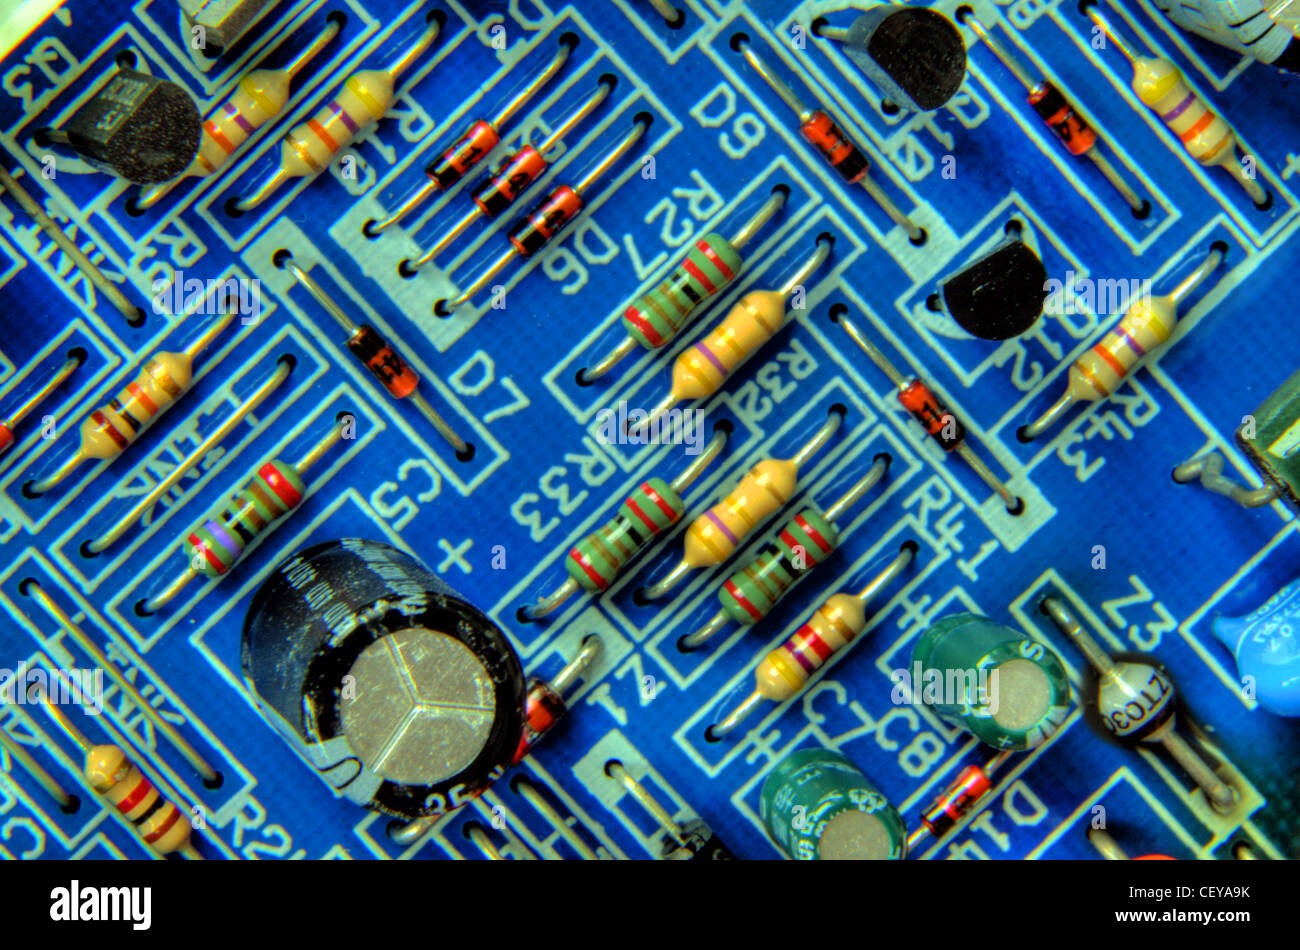 Blue Printed Circuit Board with resistors, capacitor and transistors, from Bosch Worcester central heating boiler - Stock Image